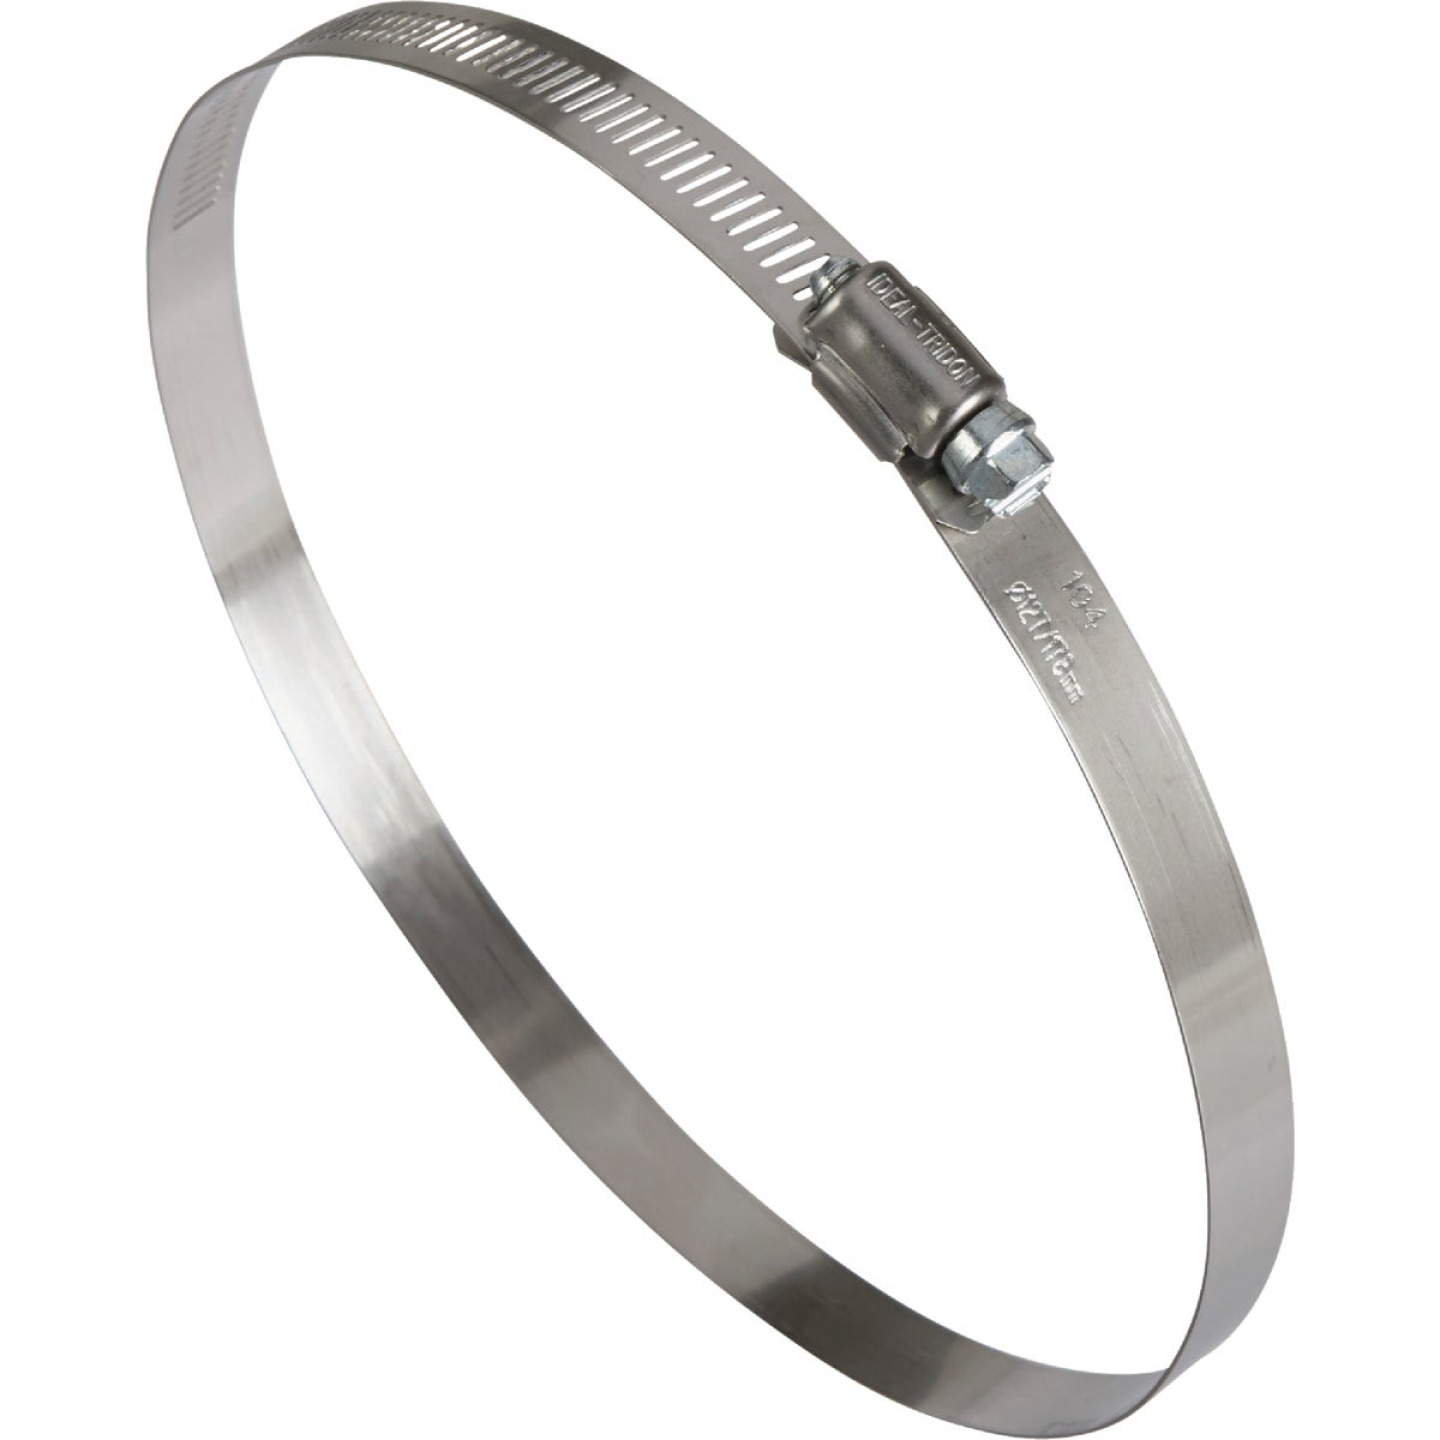 Ideal 5 In. - 7 In. 57 Stainless Steel Hose Clamp with Zinc-Plated Carbon Steel Screw Image 1